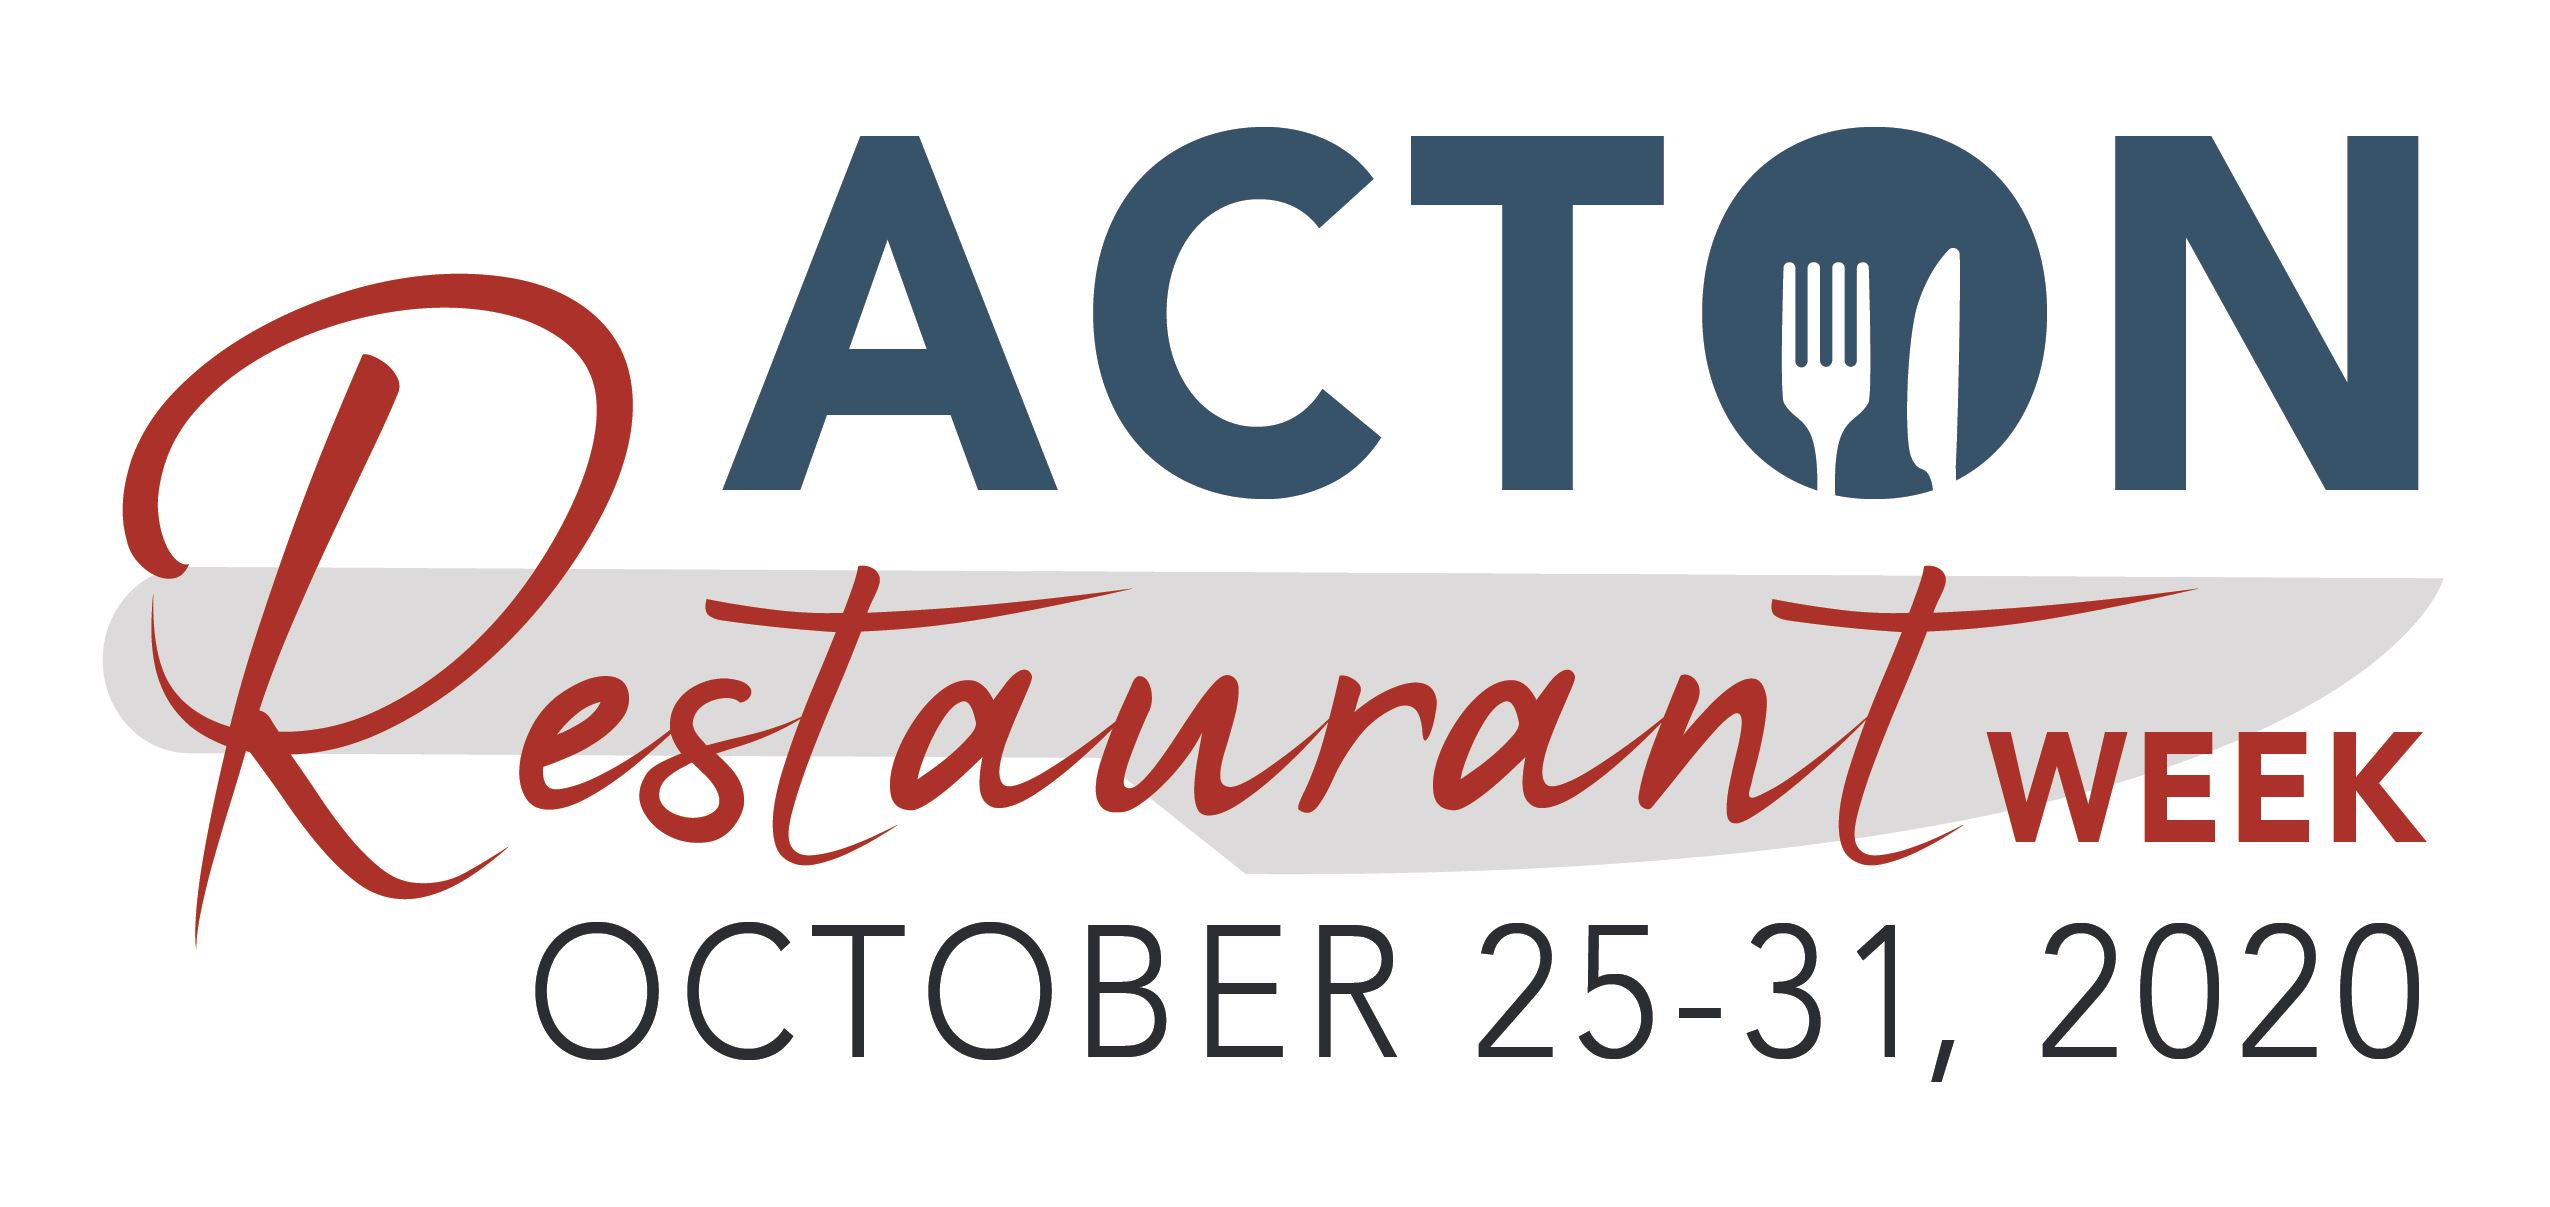 Acton Restaurant Week Logo 2020